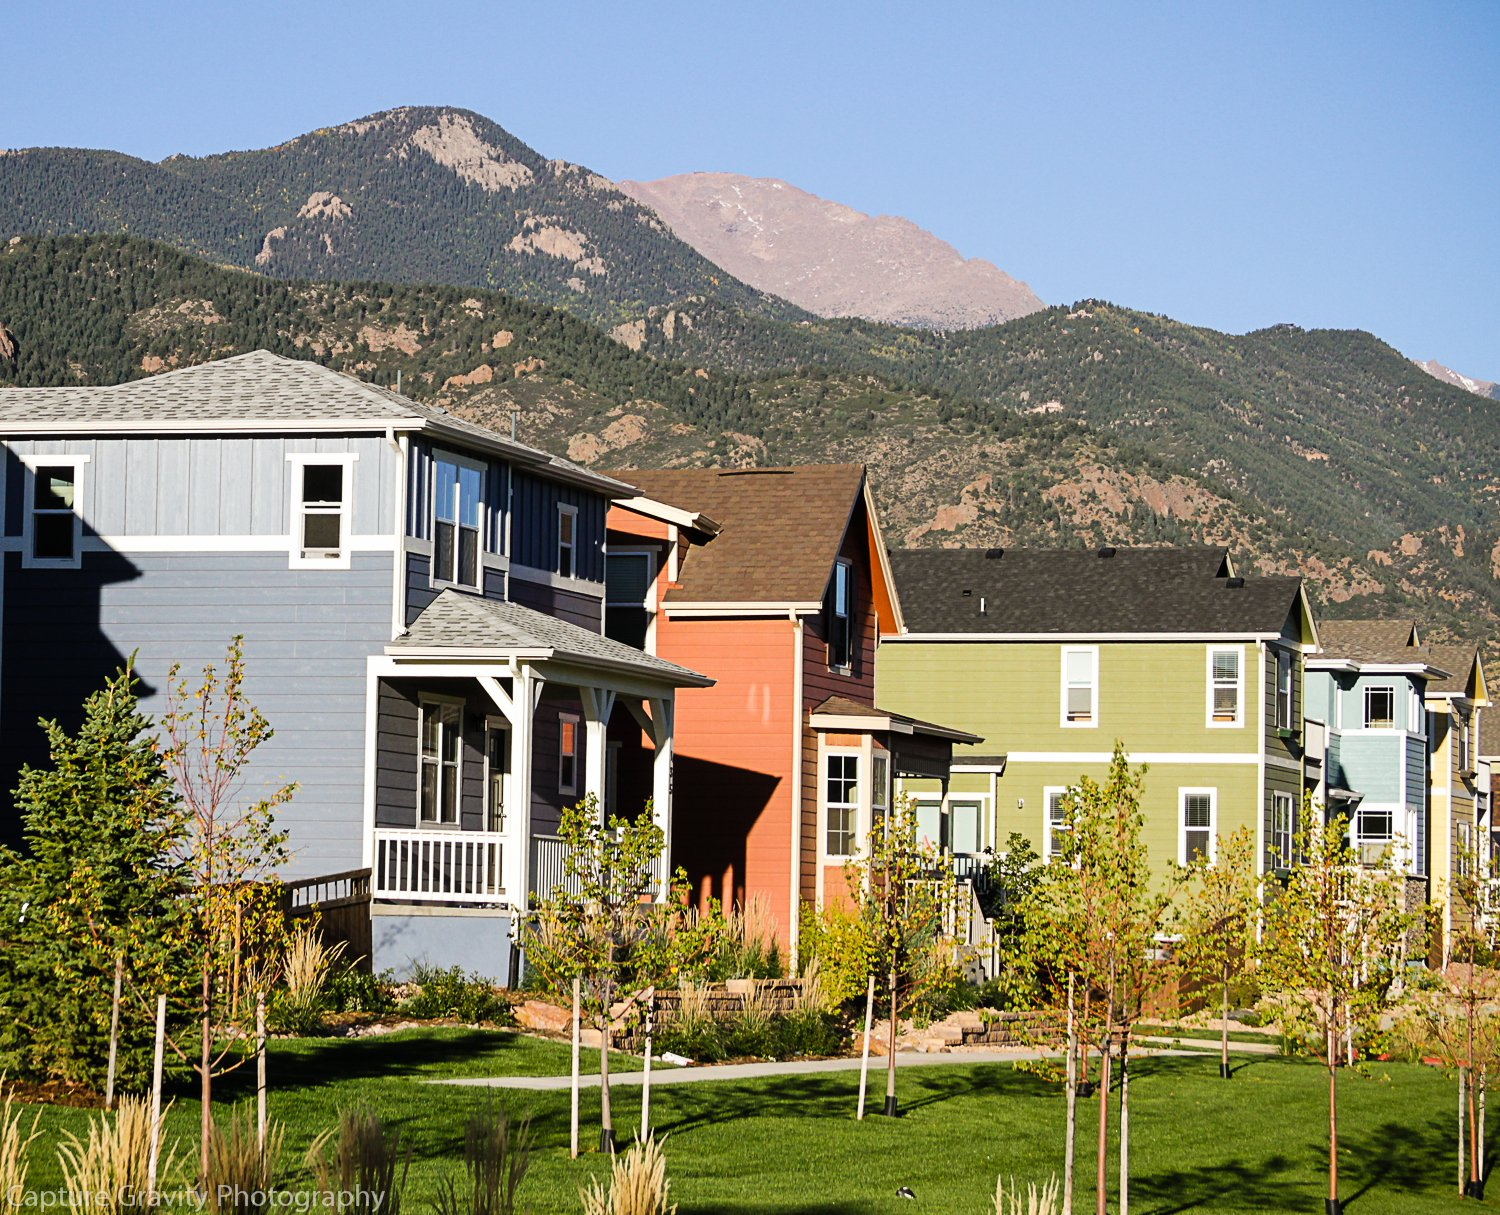 Homes with Pikes Peak in background